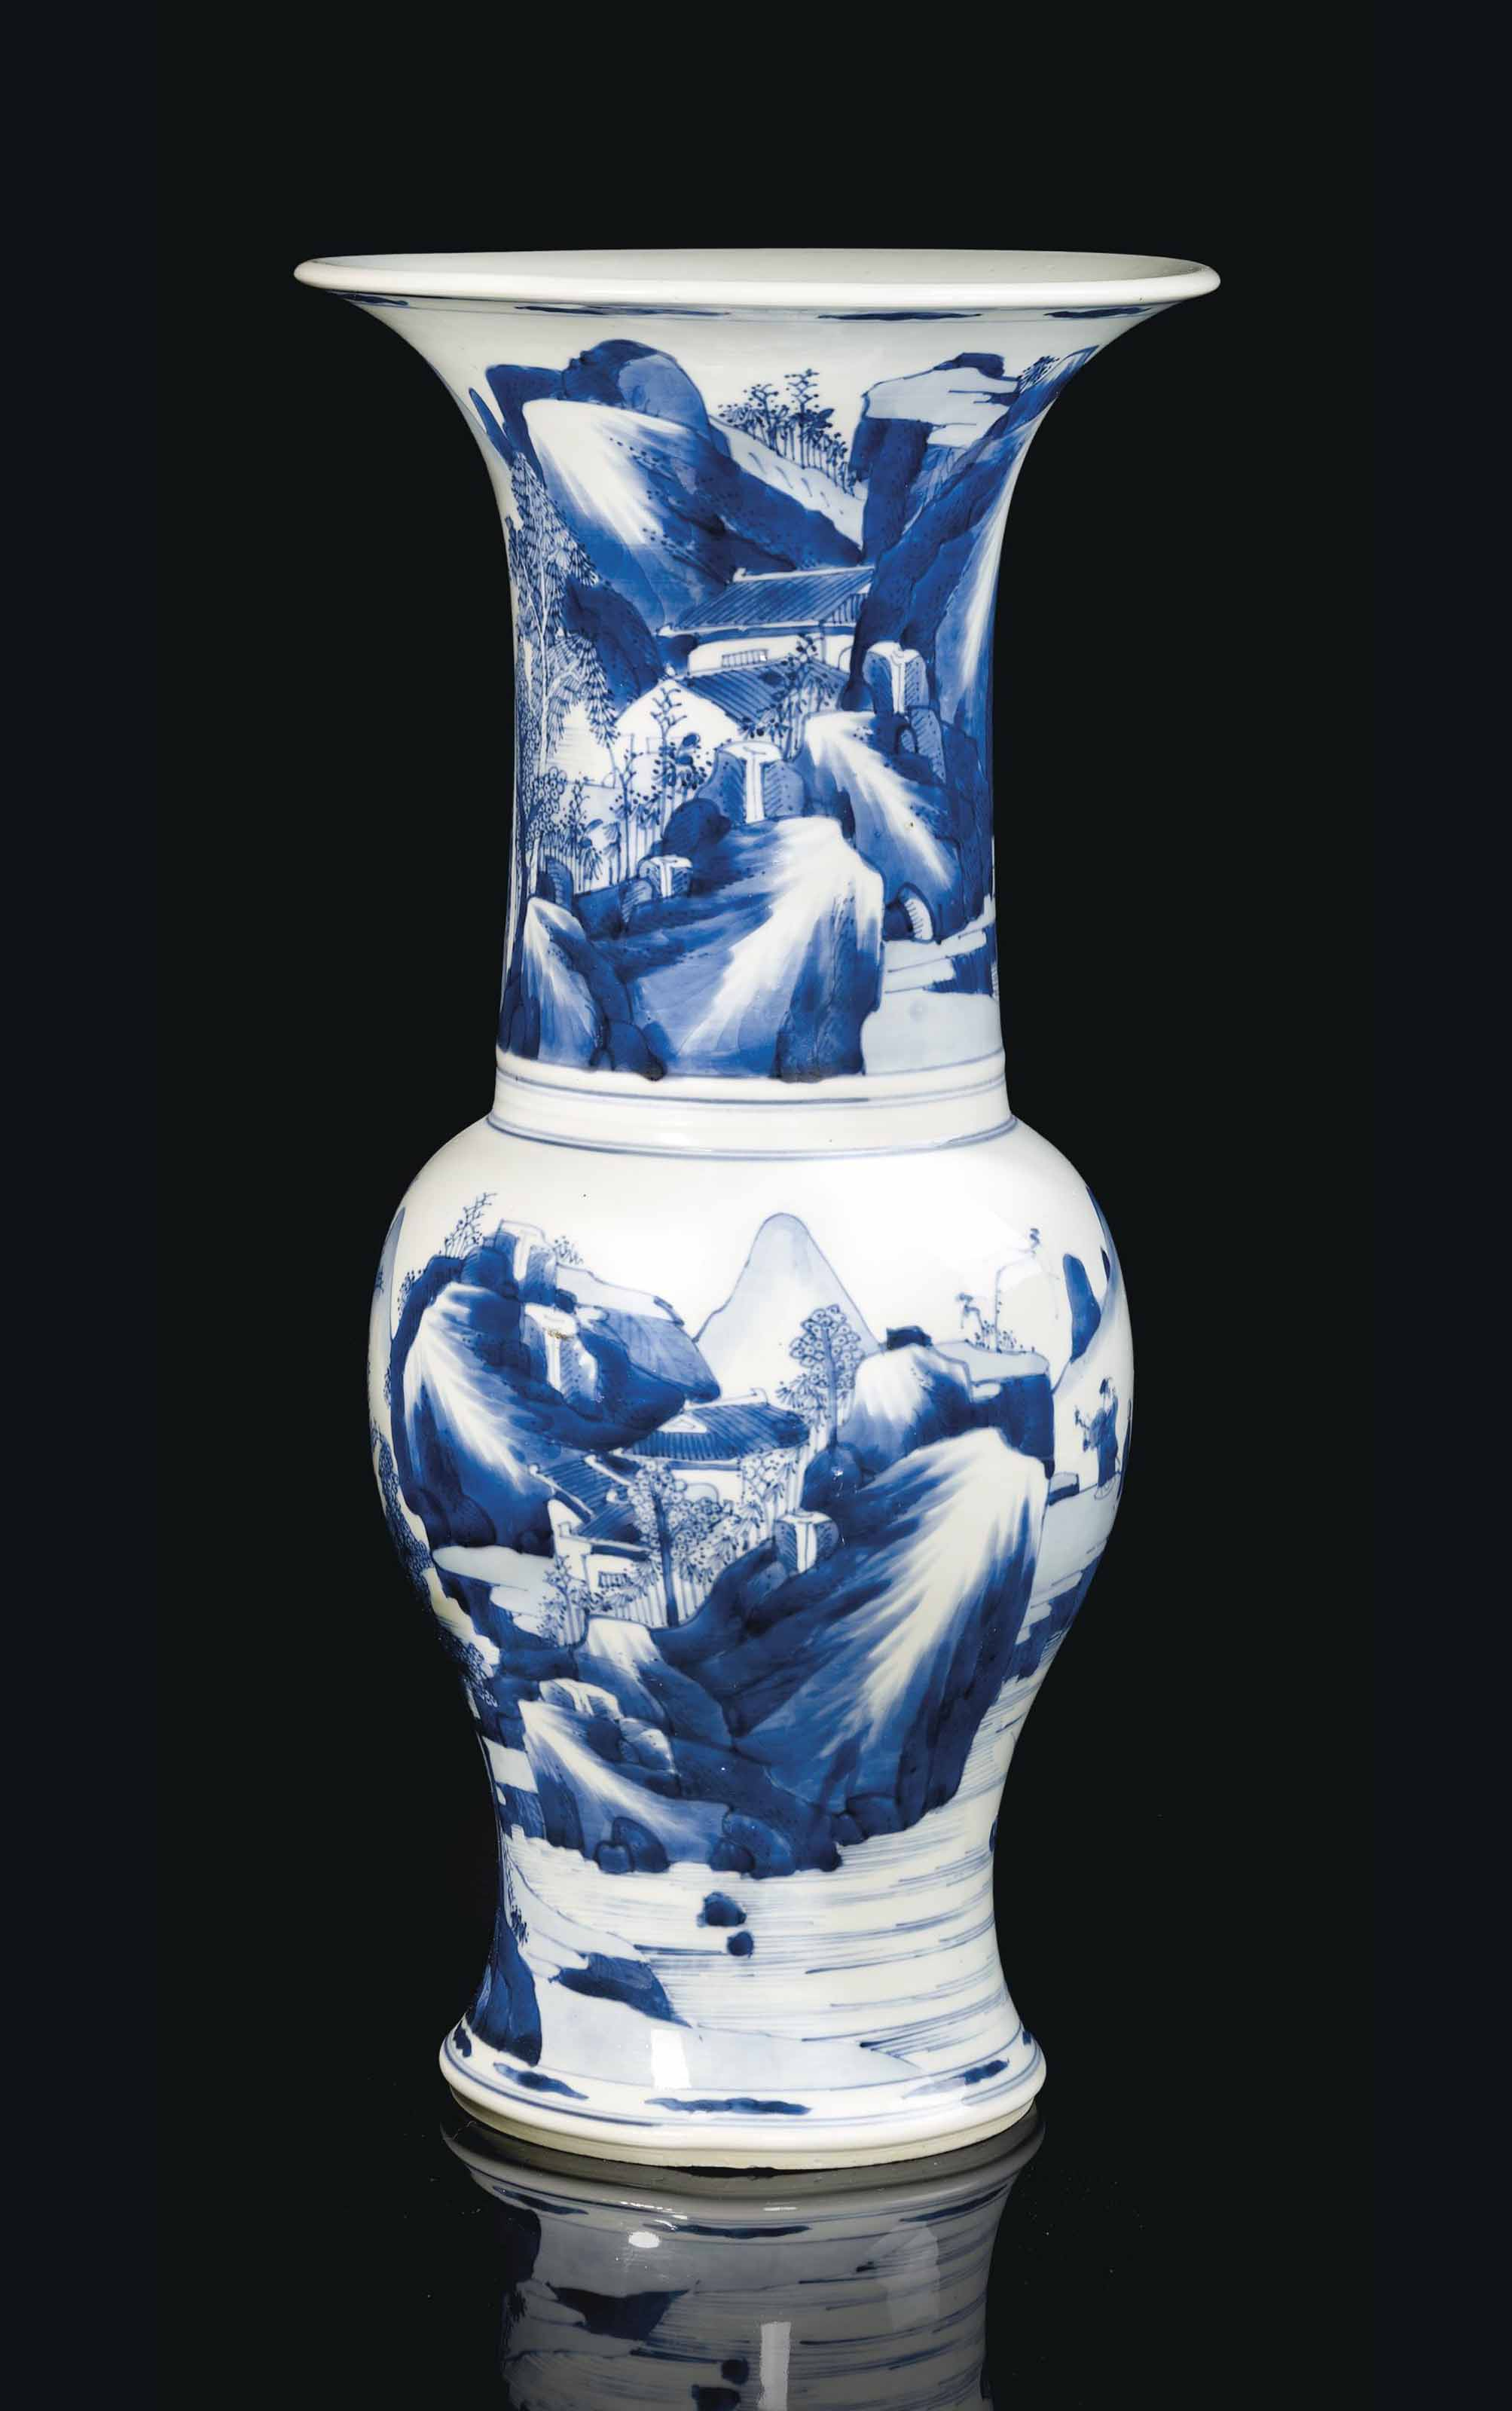 grand vase en porcelaine bleu blanc chine dynastie qing epoque kangxi 1662 1722 christie 39 s. Black Bedroom Furniture Sets. Home Design Ideas